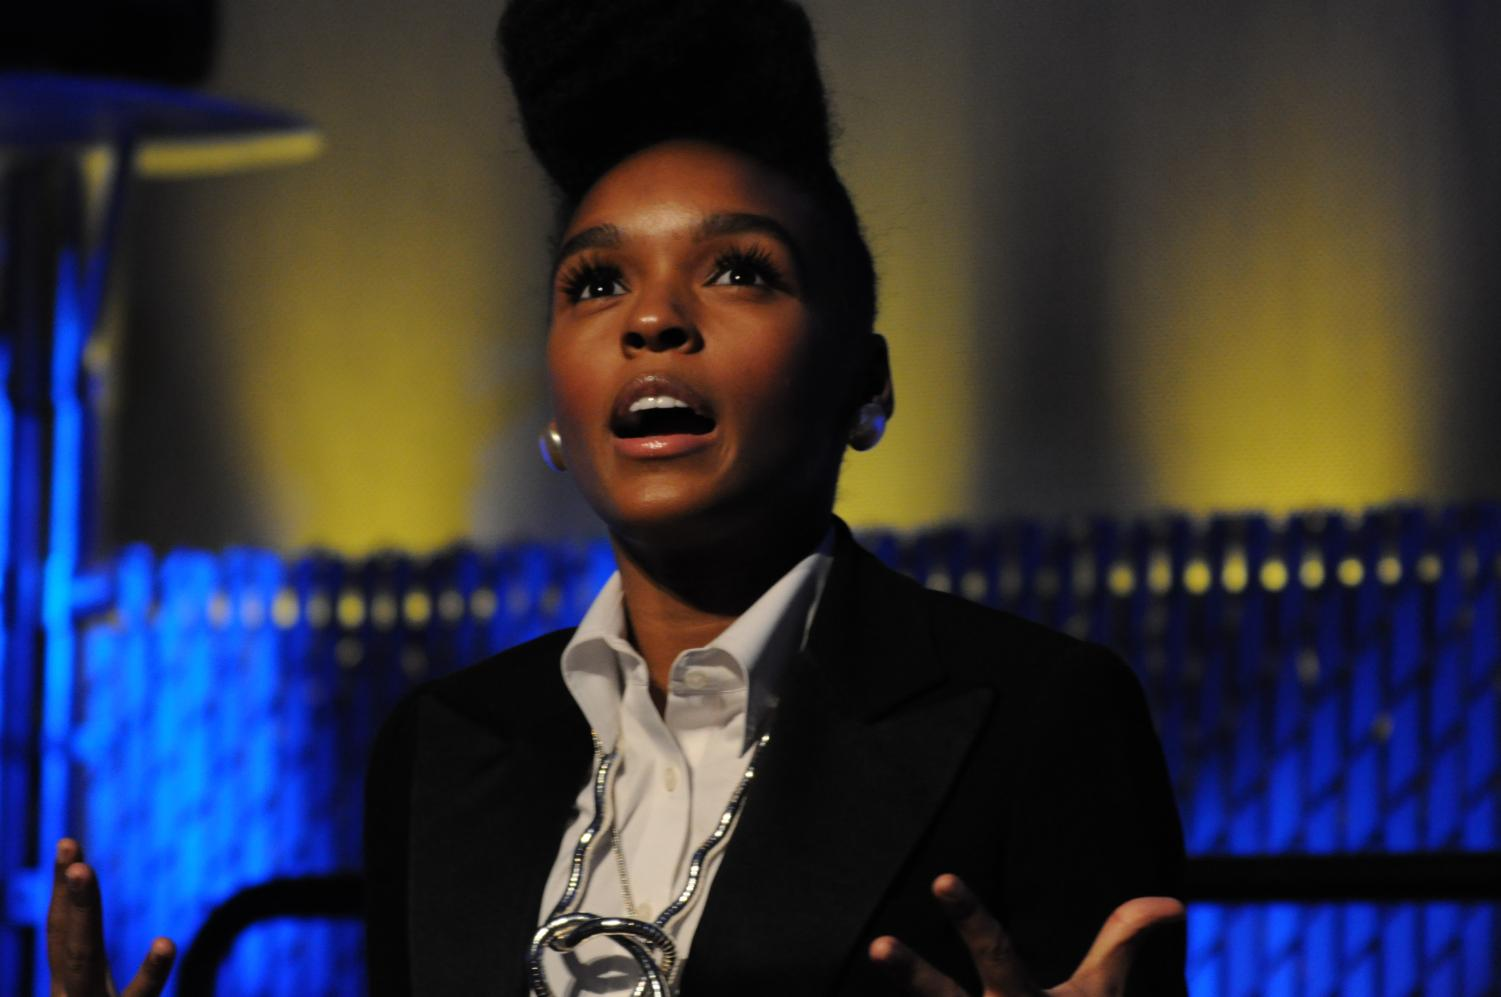 Janelle Monae, 'PYNK,' and Refuting White Feminism